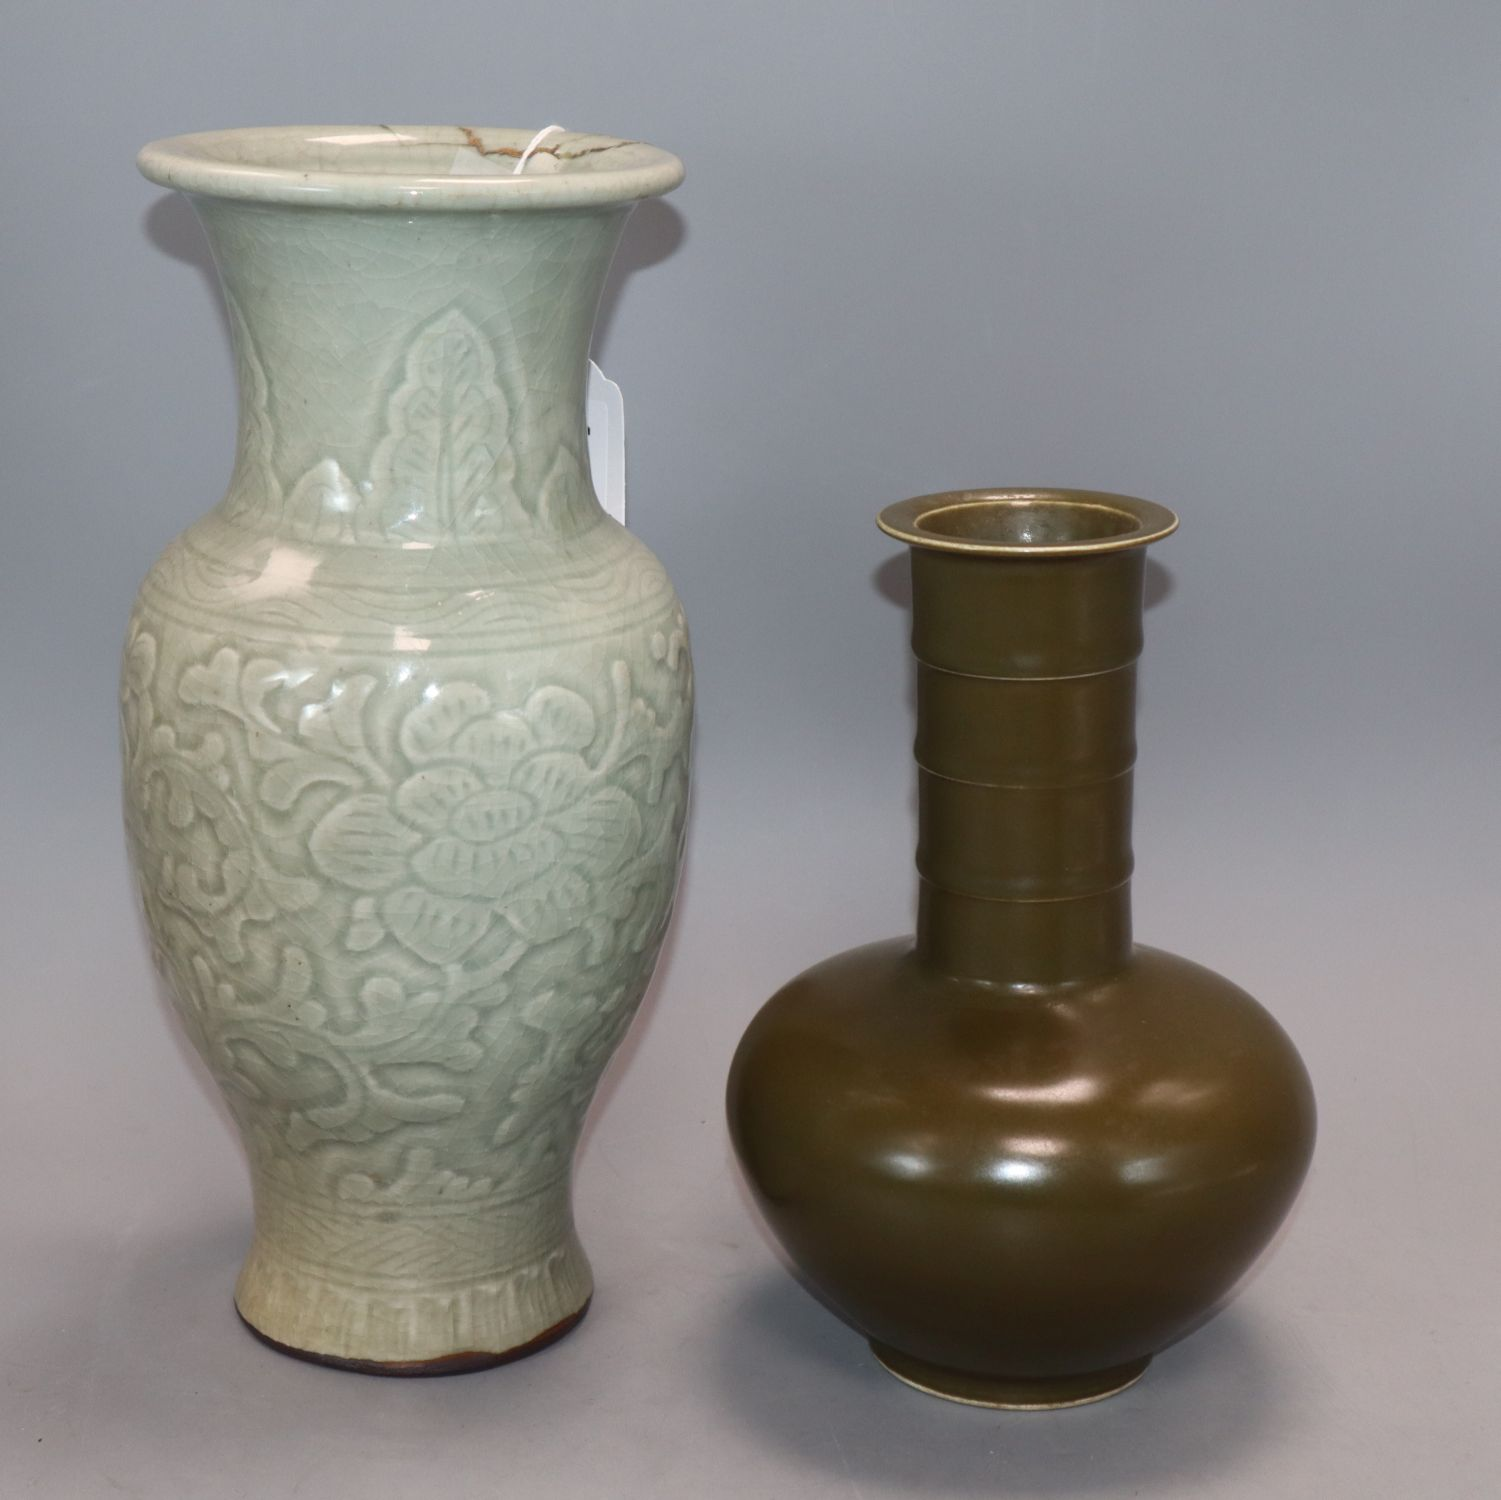 Lot 148 - A Chinese celadon ground vase and a tea dust glazed bottle vase height 30cm (a.f)